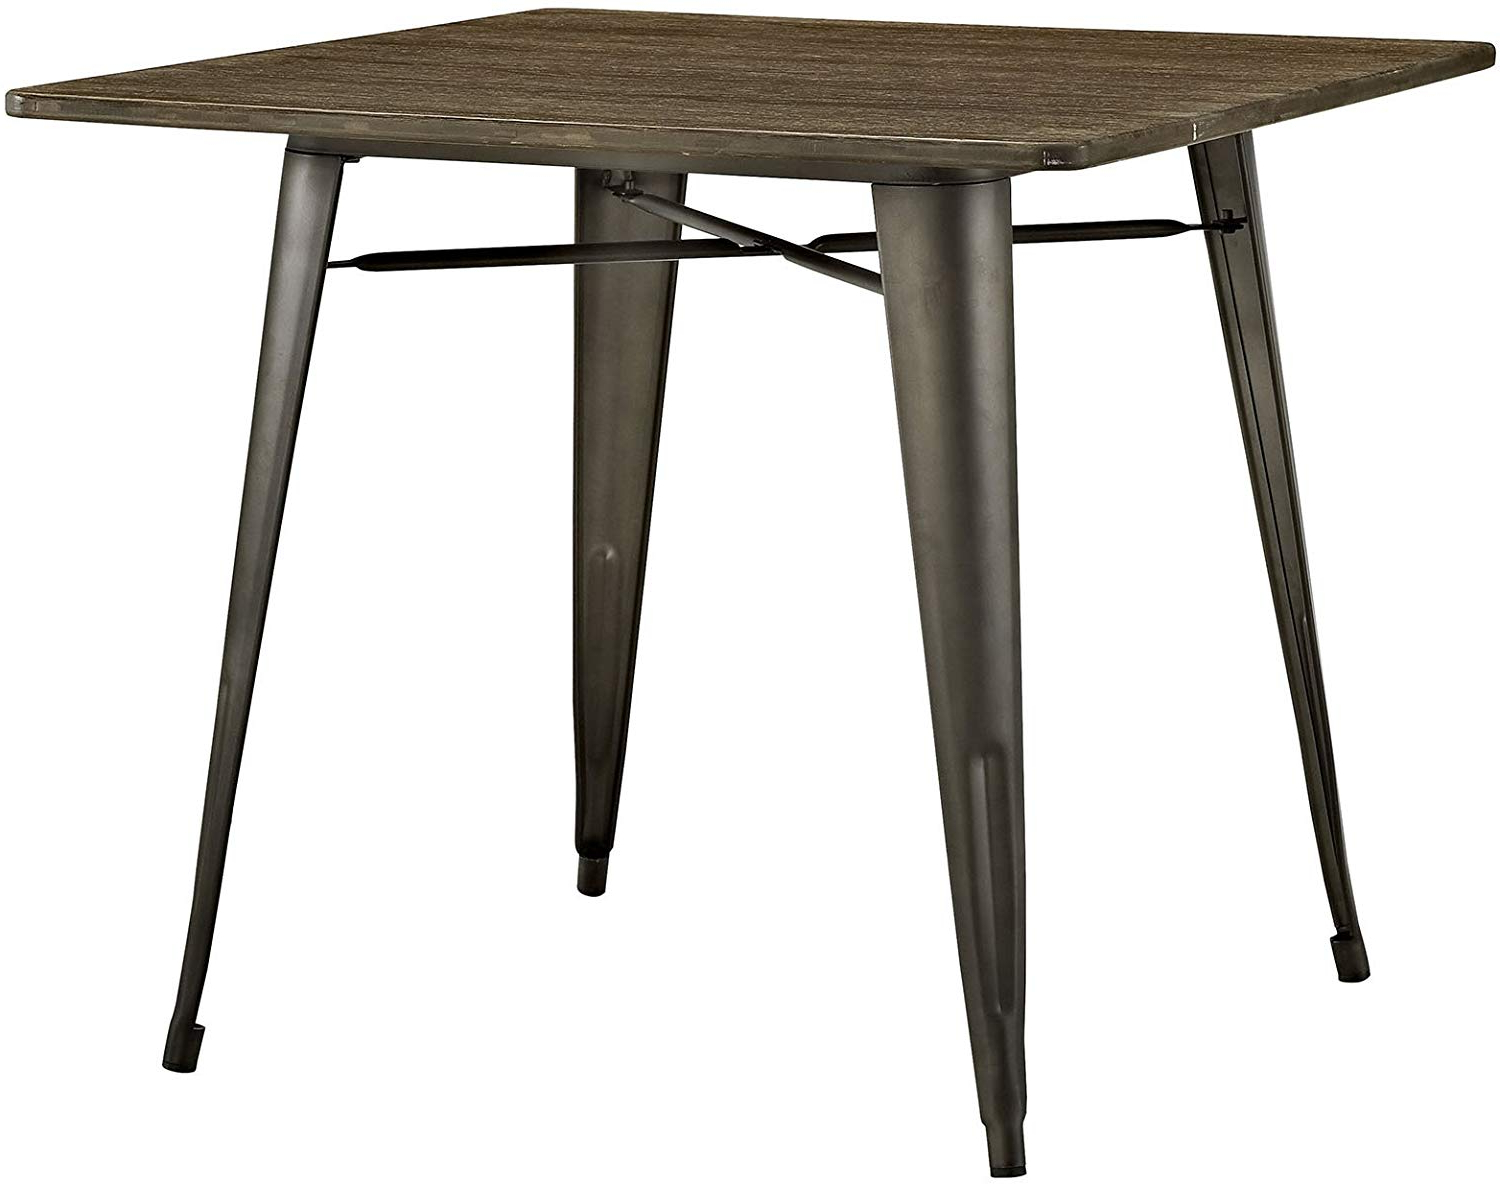 """Lexmod Mo Eei 2036 Brn Alacrity Rustic Modern Farmhouse Wood Square With Steel Legs, 36"""", Brown Pertaining To Most Popular Vintage Cream Frame And Espresso Bamboo Dining Tables (View 6 of 30)"""